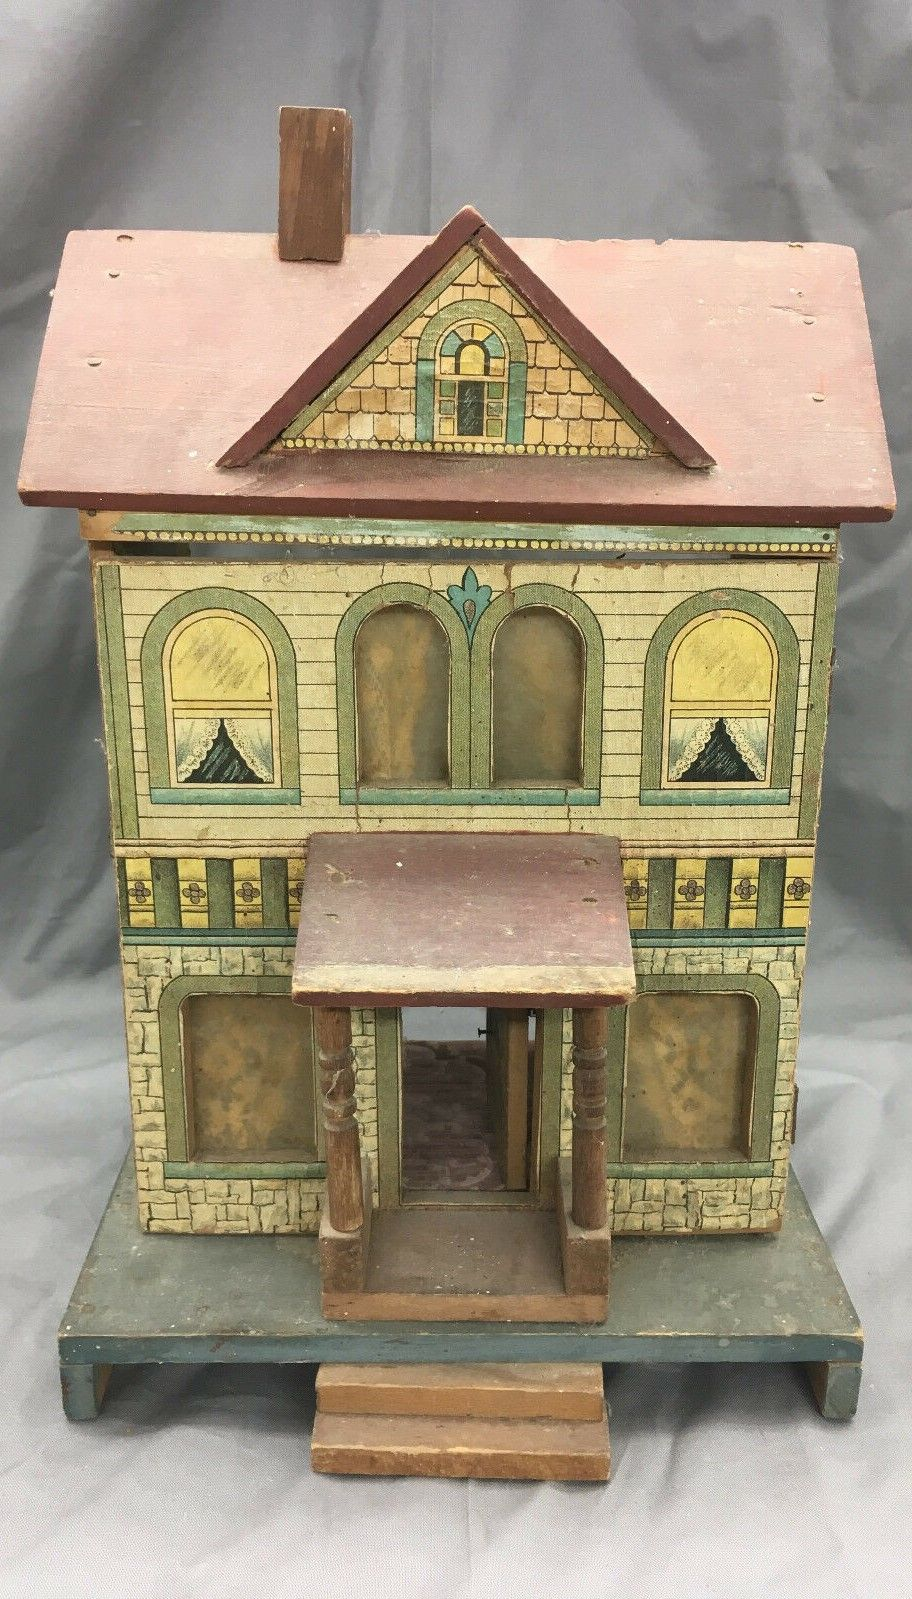 Antique R Bliss Wooden Dollhouse Lithograph Wood Doll House 2 Story